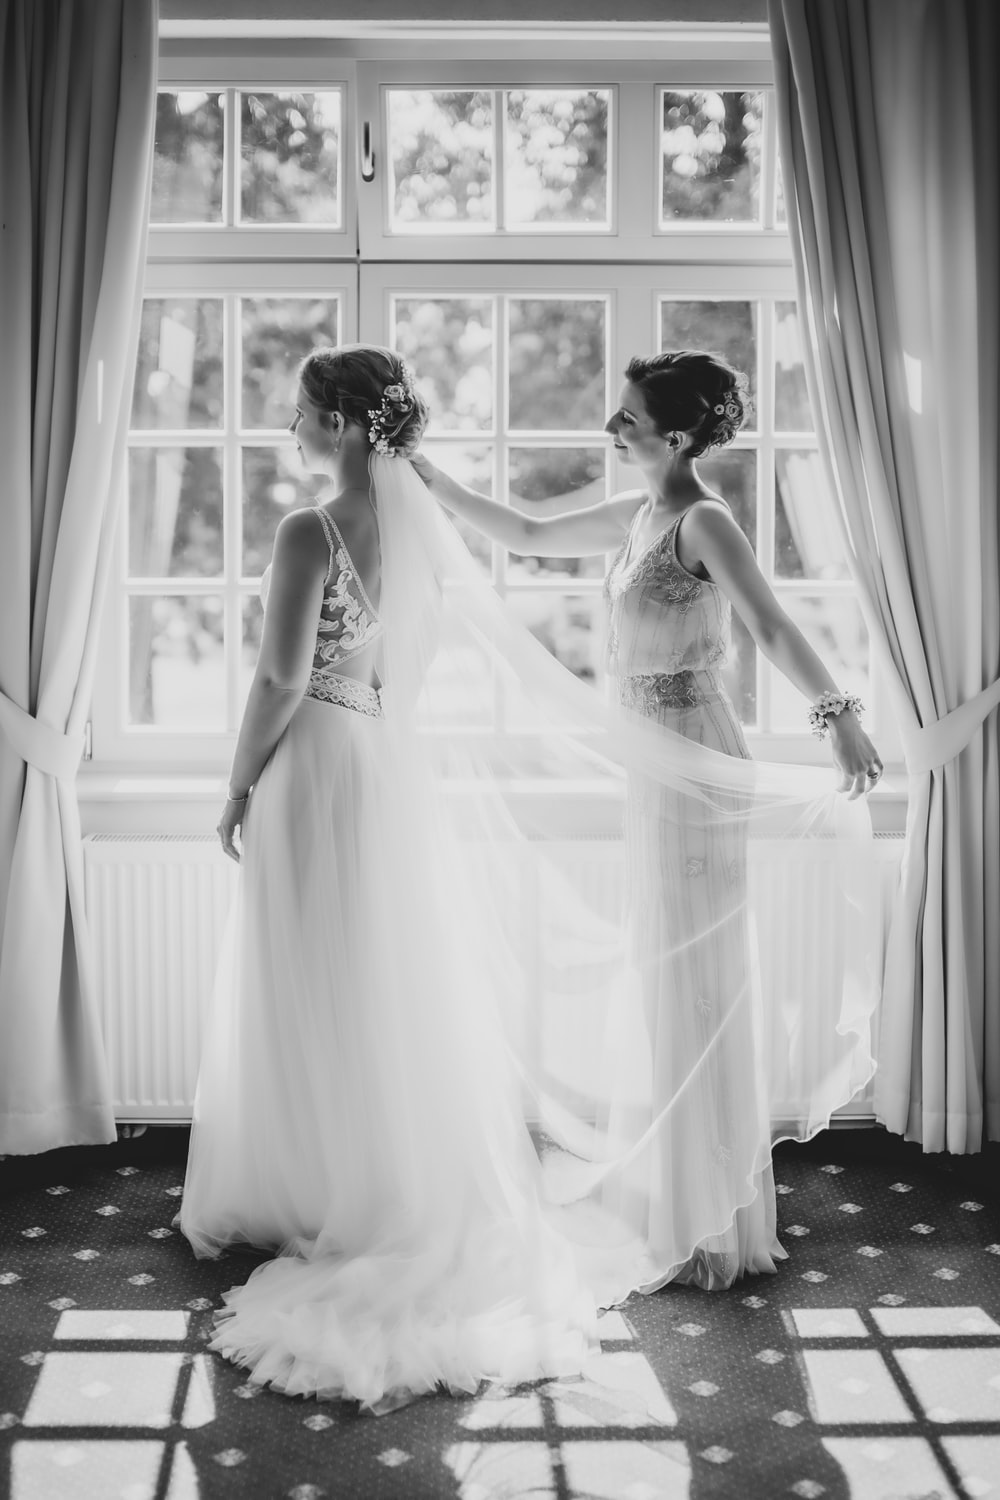 grayscale photo of woman in wedding dress